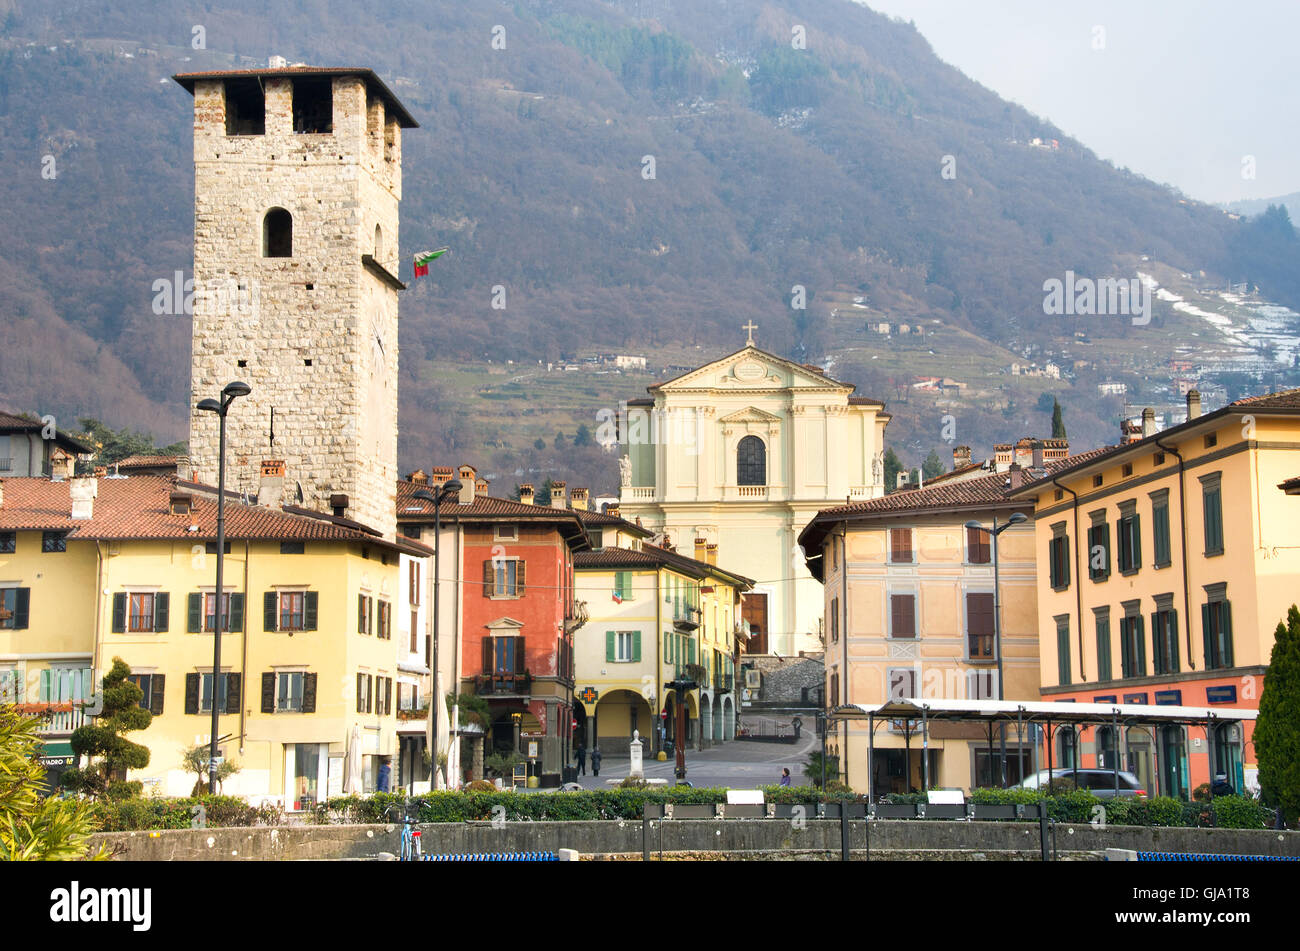 Brescia, Italy - February 16, 2013: the town center of Pisogne during winter, with the Vescovi tower and the Santa - Stock Image